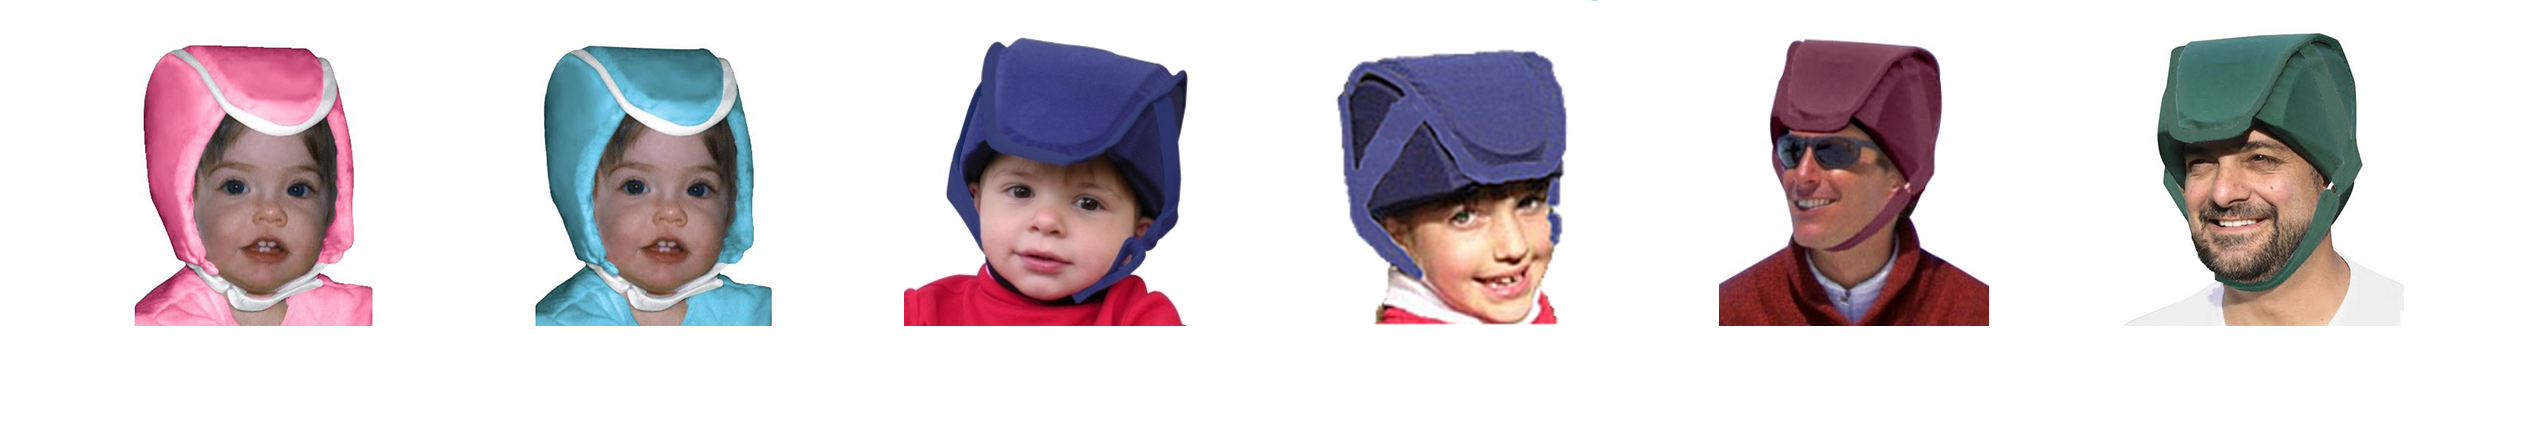 Plum's®-ProtectaCap+Plus®-Advanced-Fall-Protection-Helmets-Come-in-6-Sizes-Babies-Adults